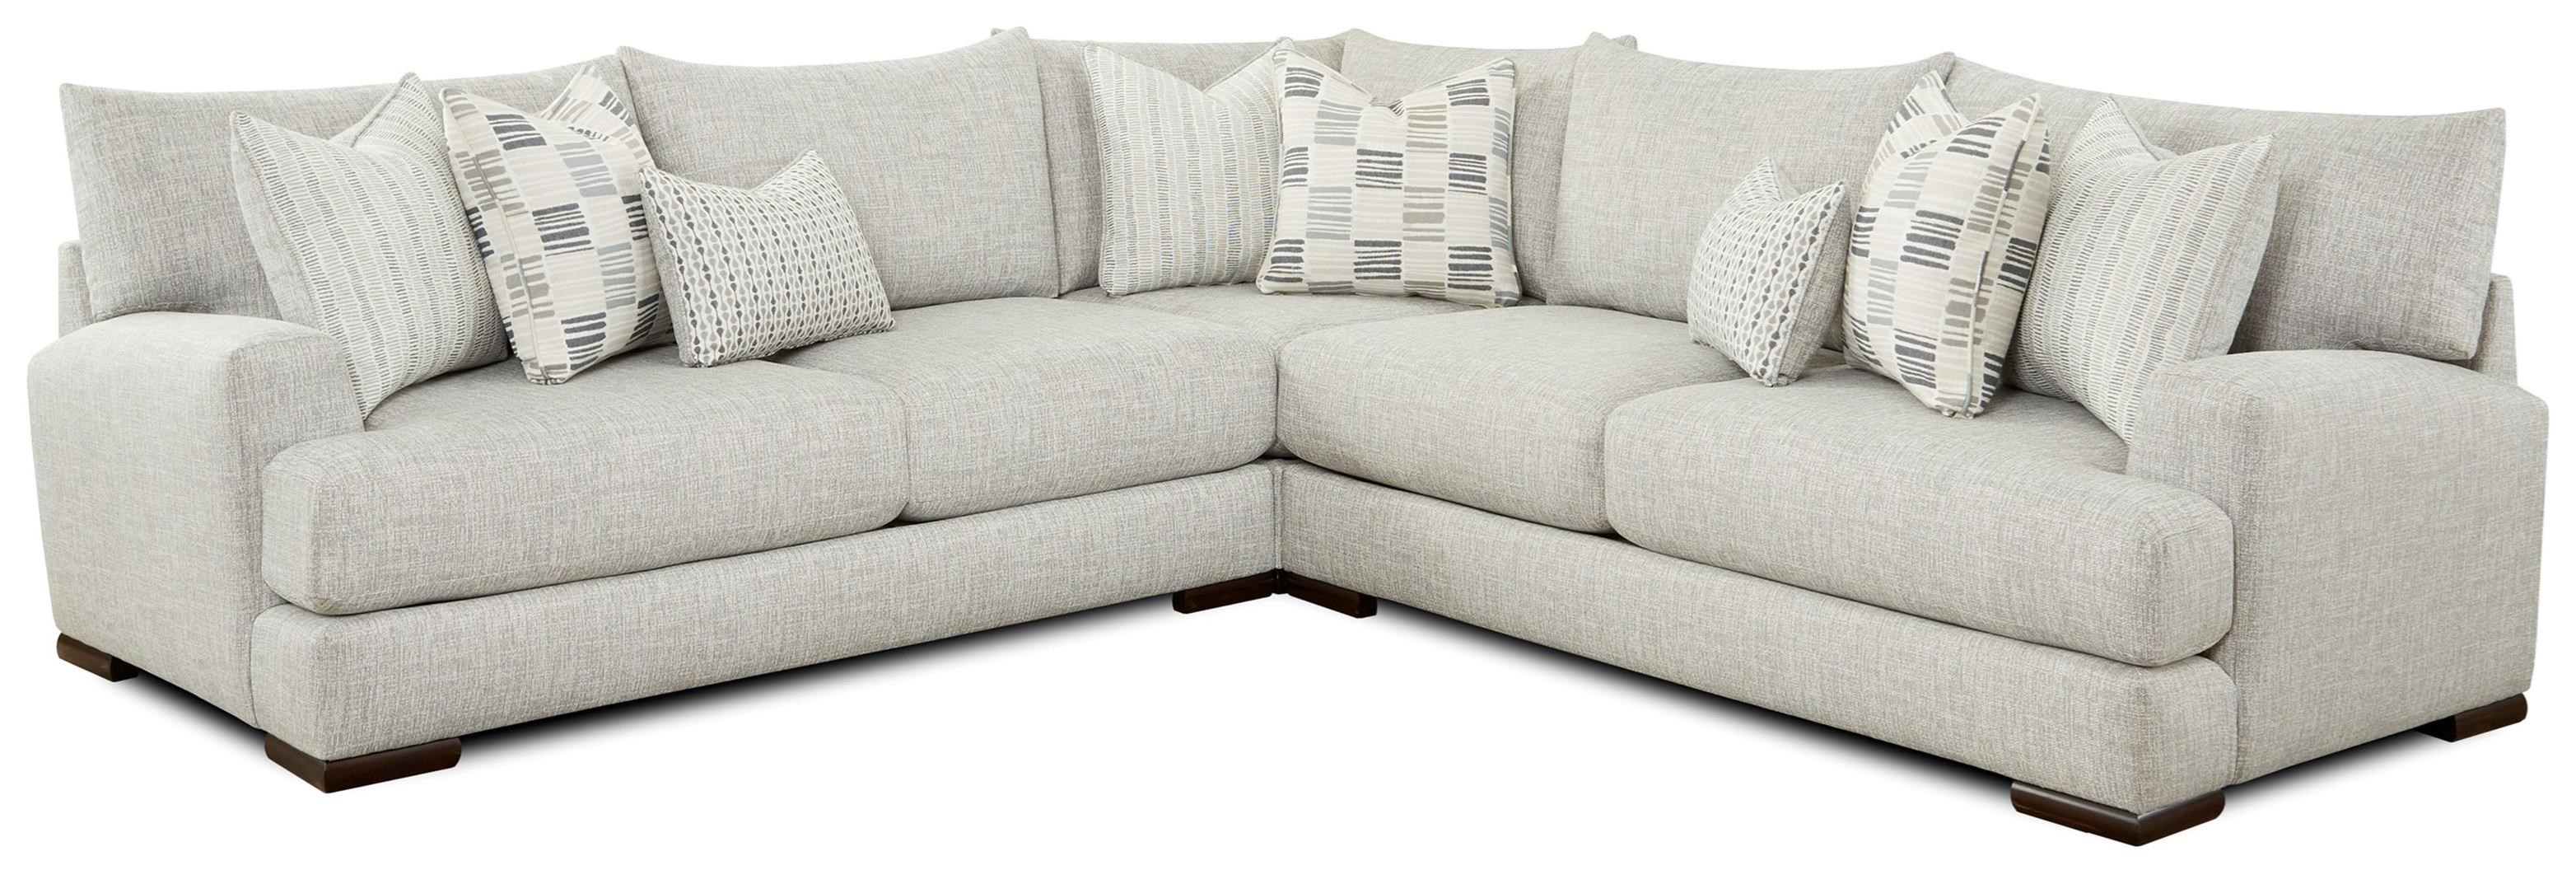 51-00 3-Piece Sectional by Fusion Furniture at Wilson's Furniture